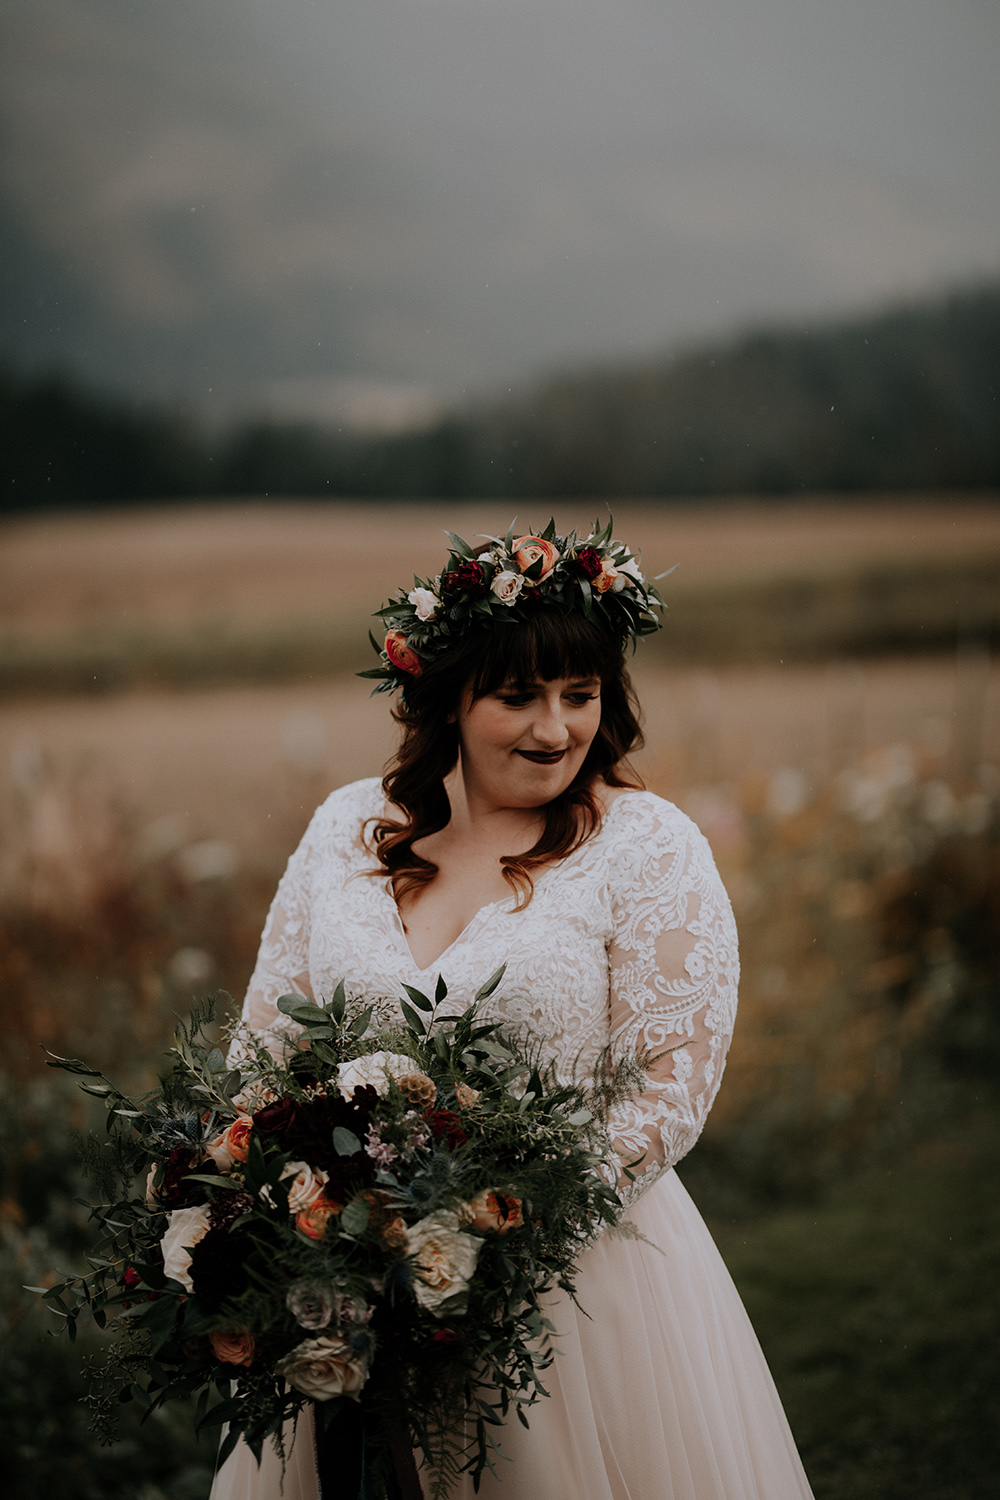 Foggy Intimate Scenic Wedding on Apple Brides